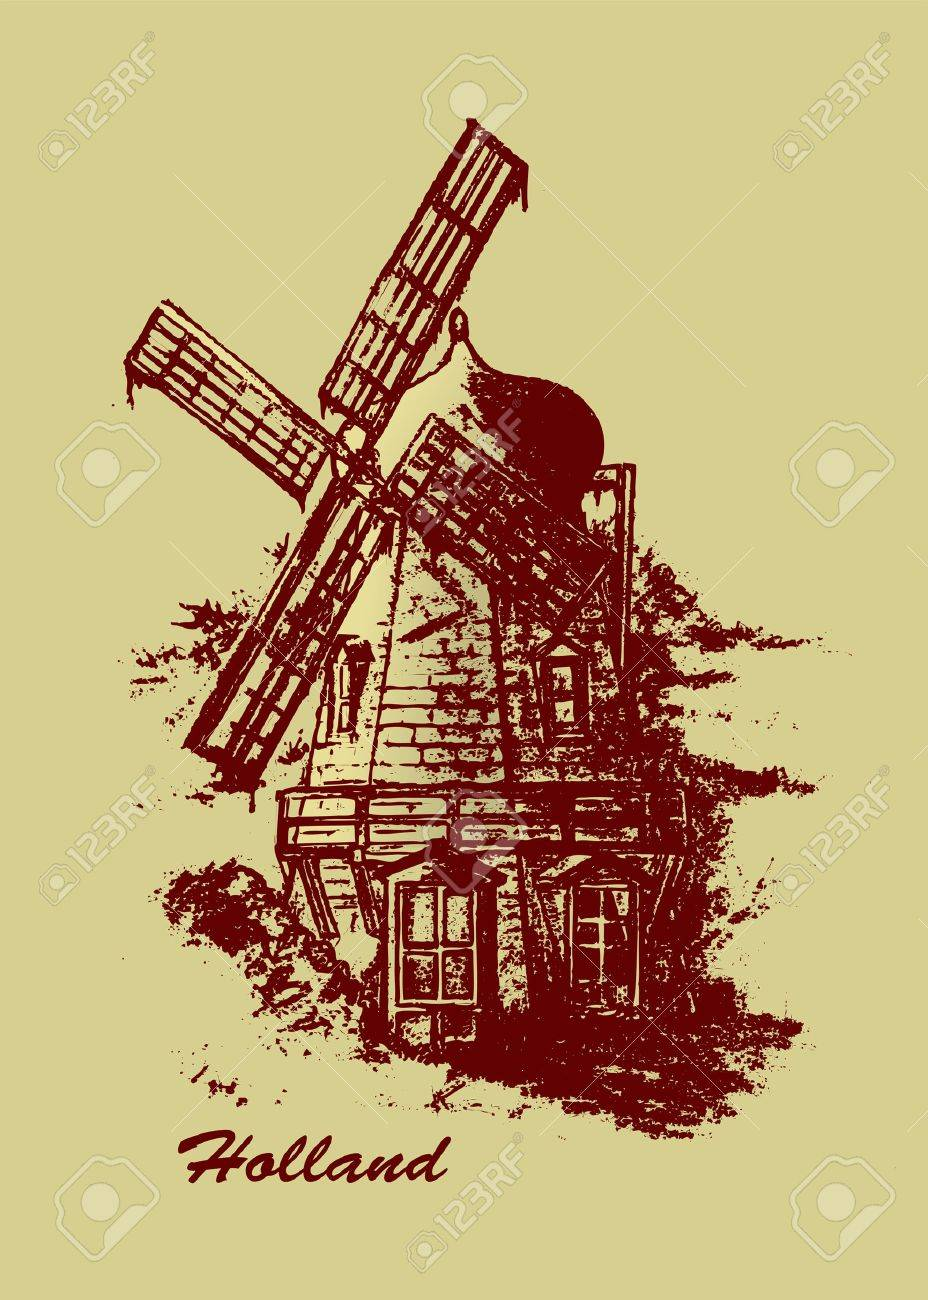 928x1300 Old Dutch Windmill. Pencil Drawing Vector Illustration Royalty